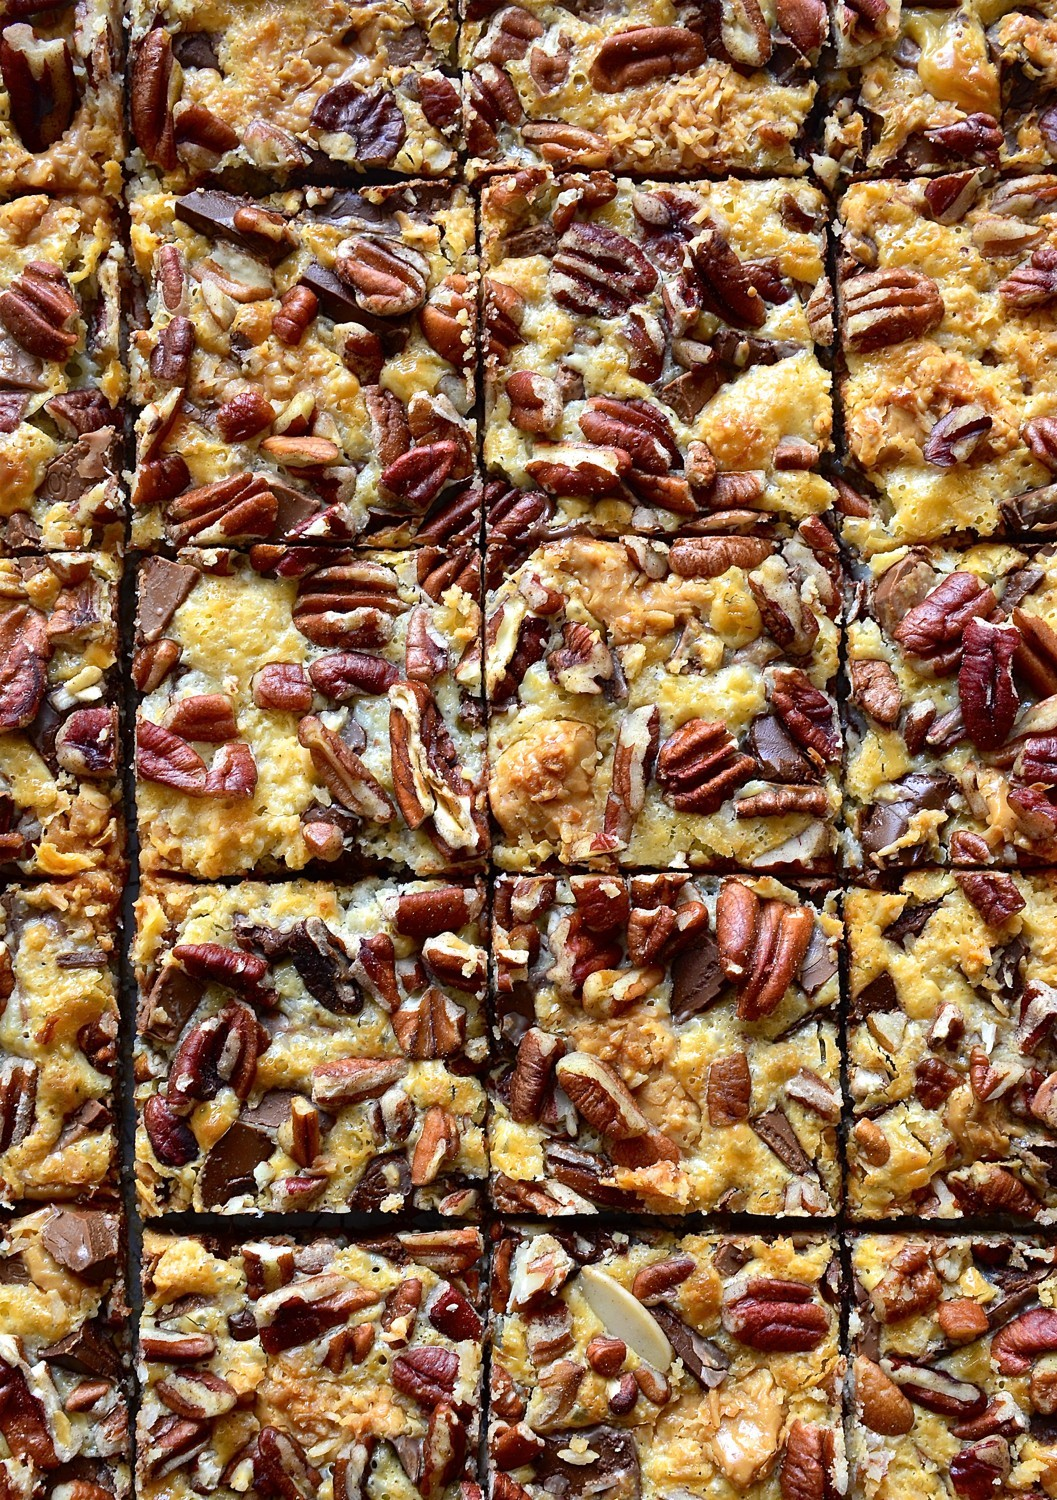 Peanut butter and caramel-toffee chocolate bars | Bibbyskitchen recipes